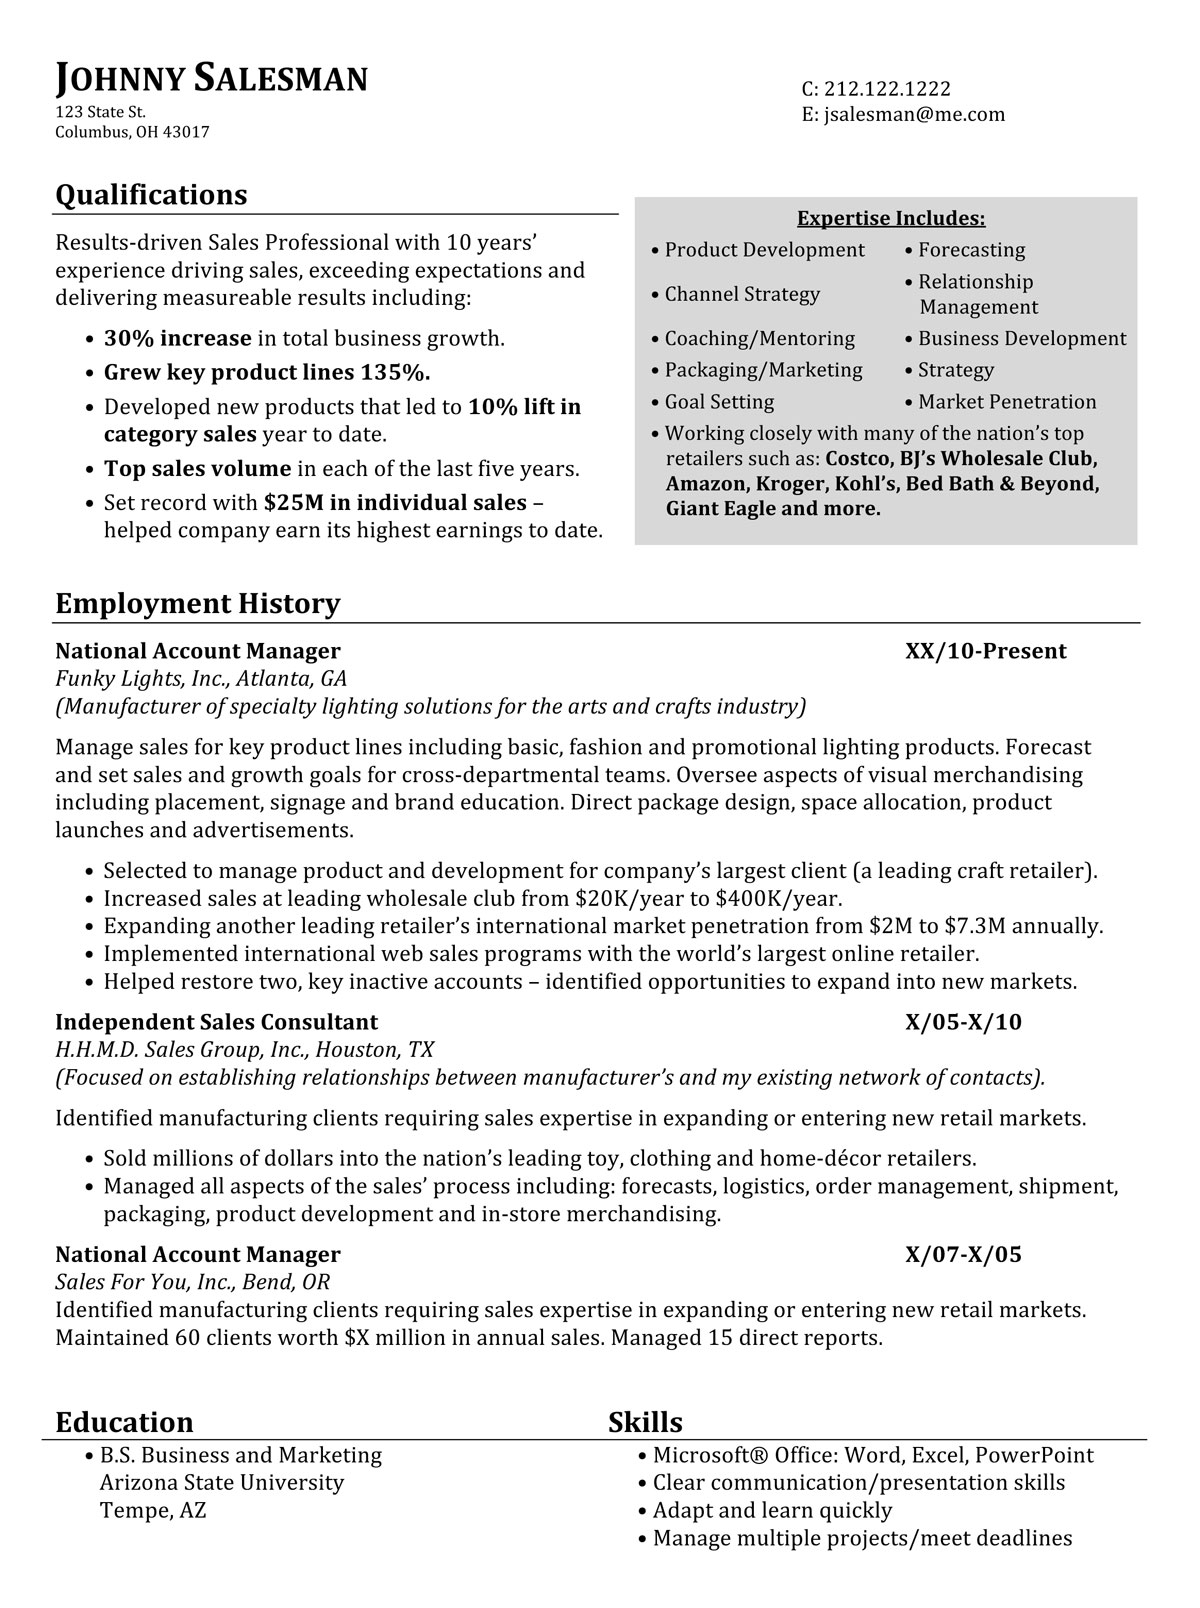 Start your job search with a powerful new résumé – Restore My Résumé